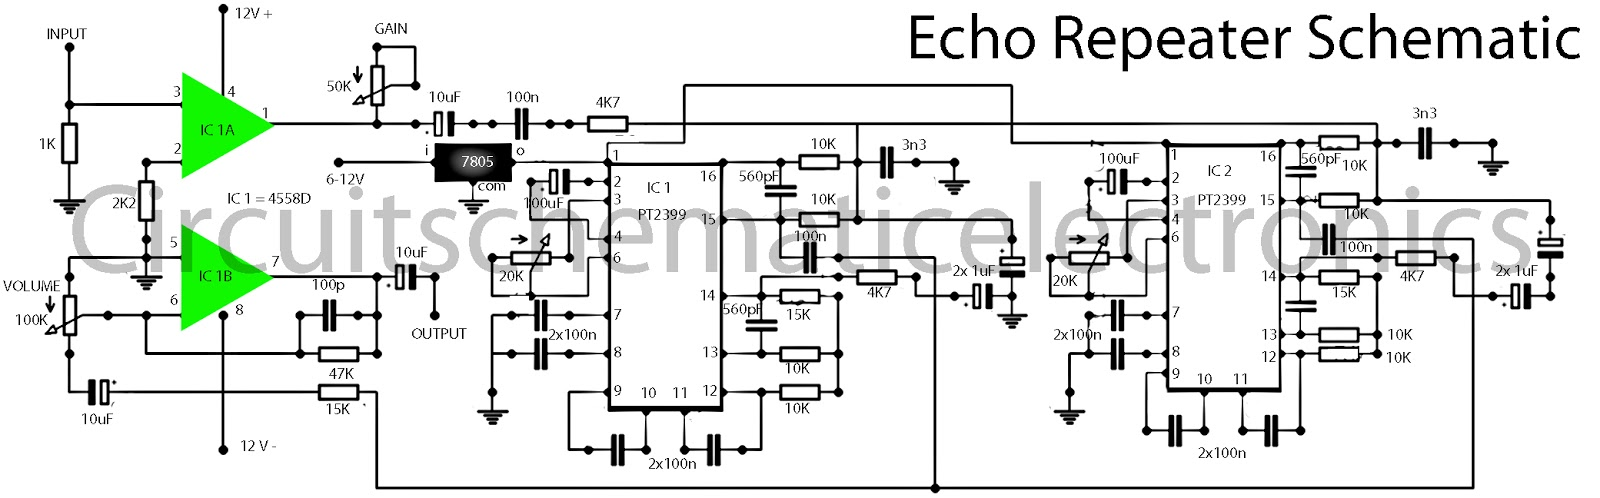 Echo+repeater+circuit+schematic echo effect with ic pt2399 & 4558 electronic circuit toyota echo wiring diagram at alyssarenee.co